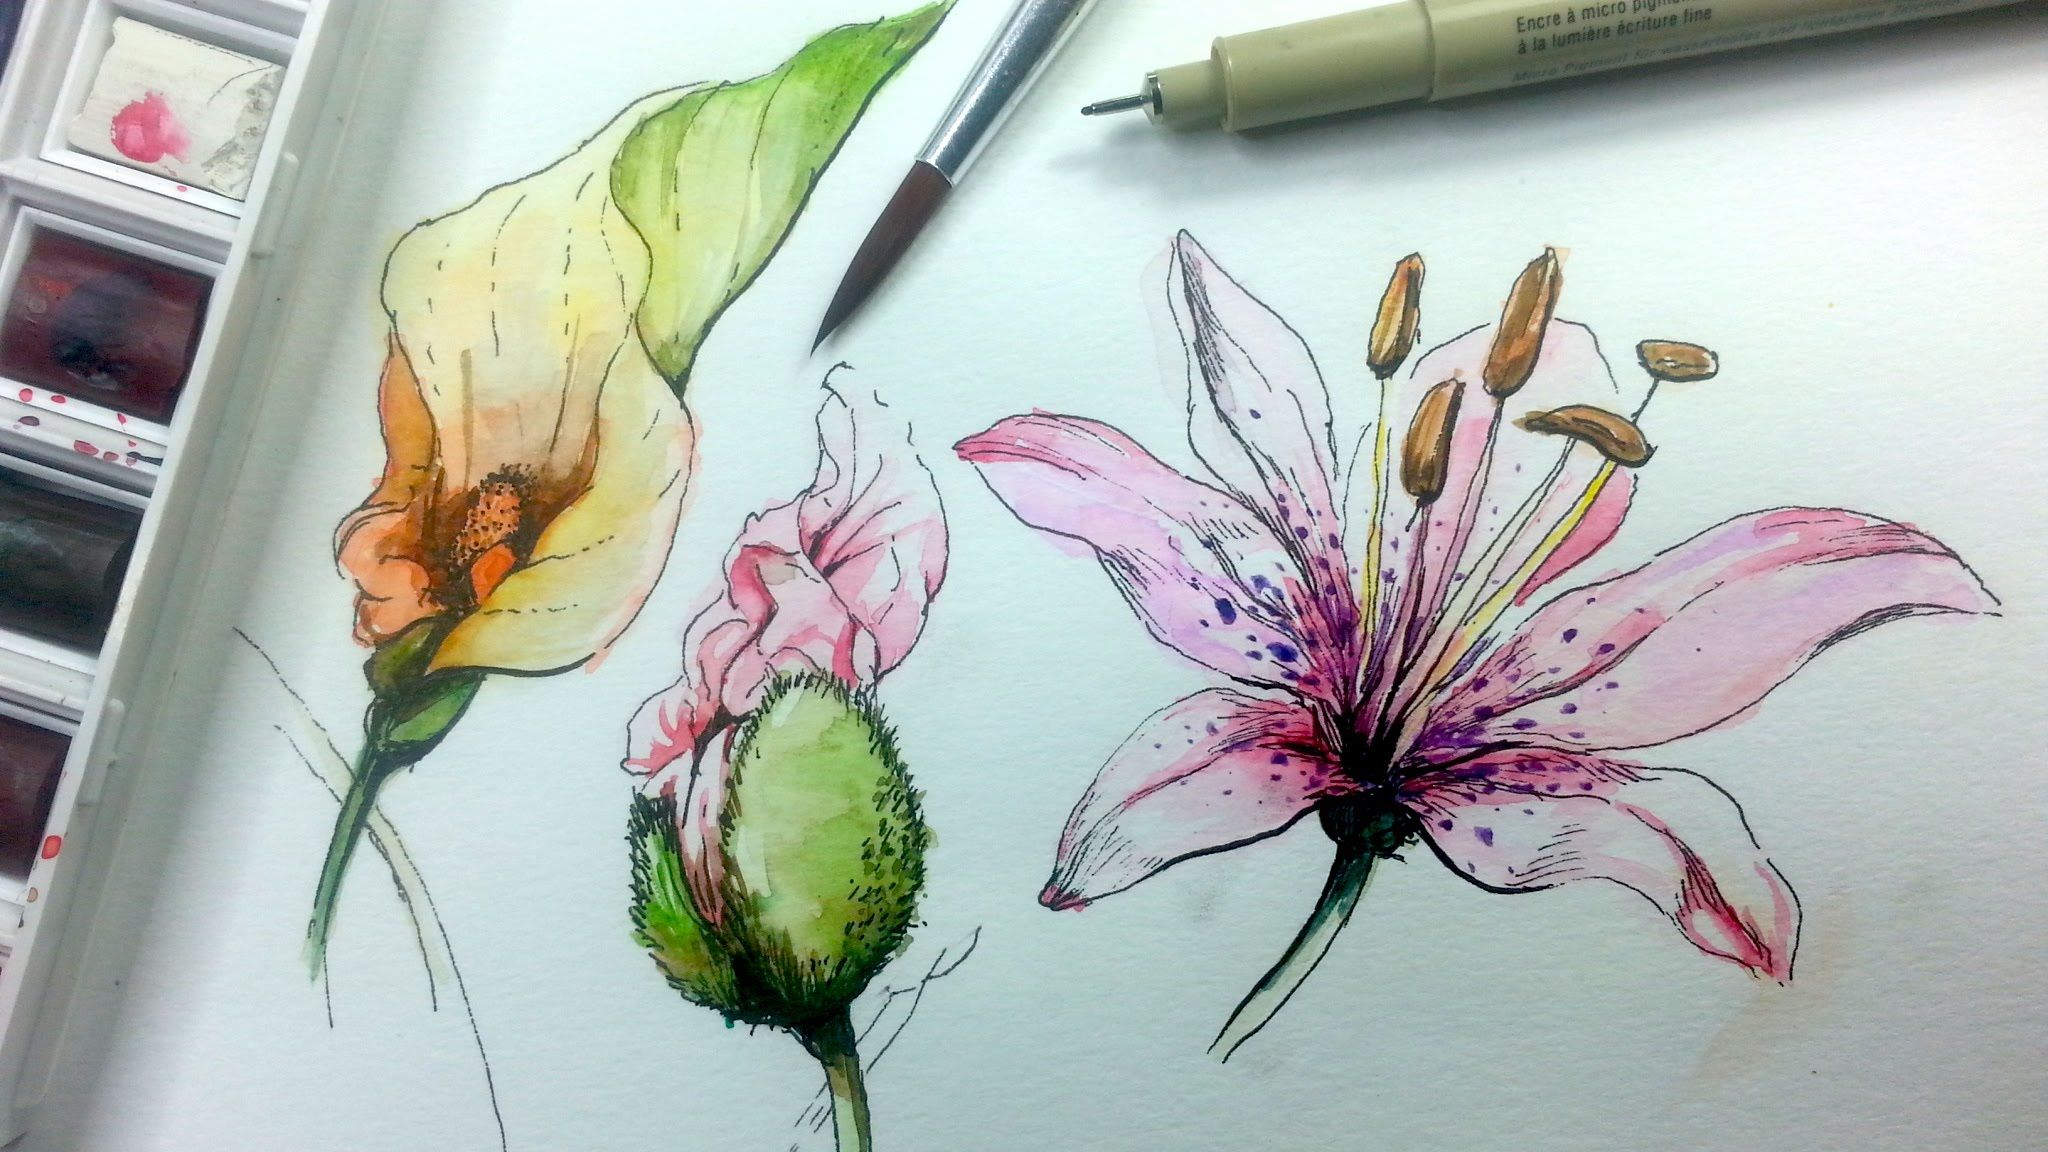 How To Draw And Paint Flowers With Pen And Ink And